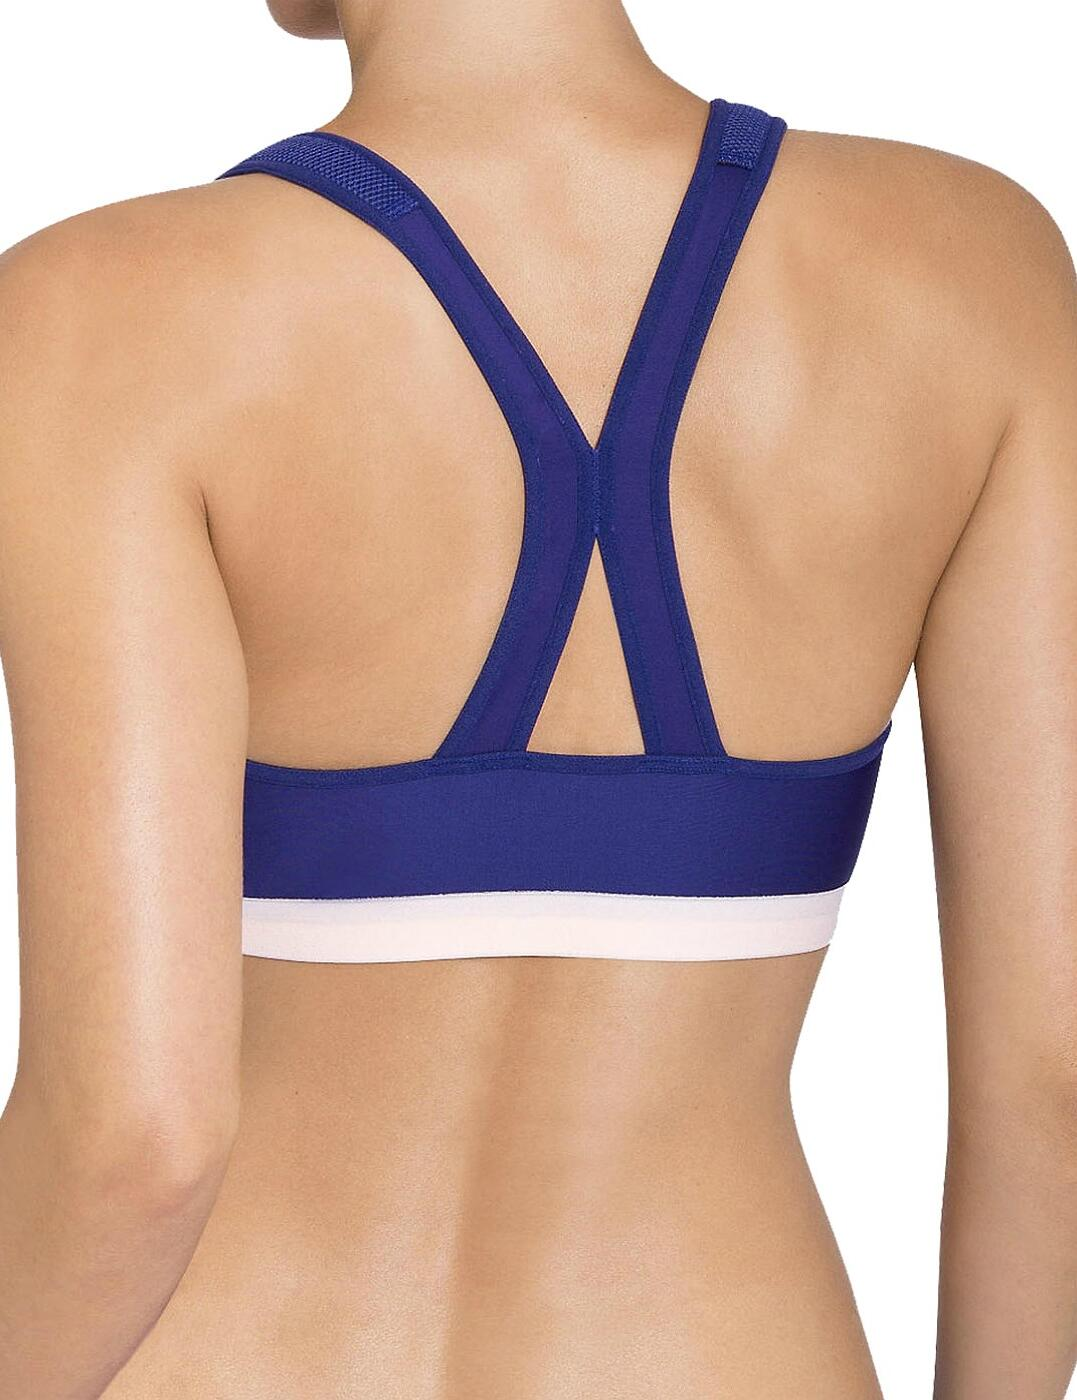 b99085a0019 Triumph Triaction Control Boost F 10158891 Zip Soft Cup Gym Fitness Sports  Bra 36 C. About this product. Picture 1 of 3; Picture 2 of 3; Picture 3 of 3